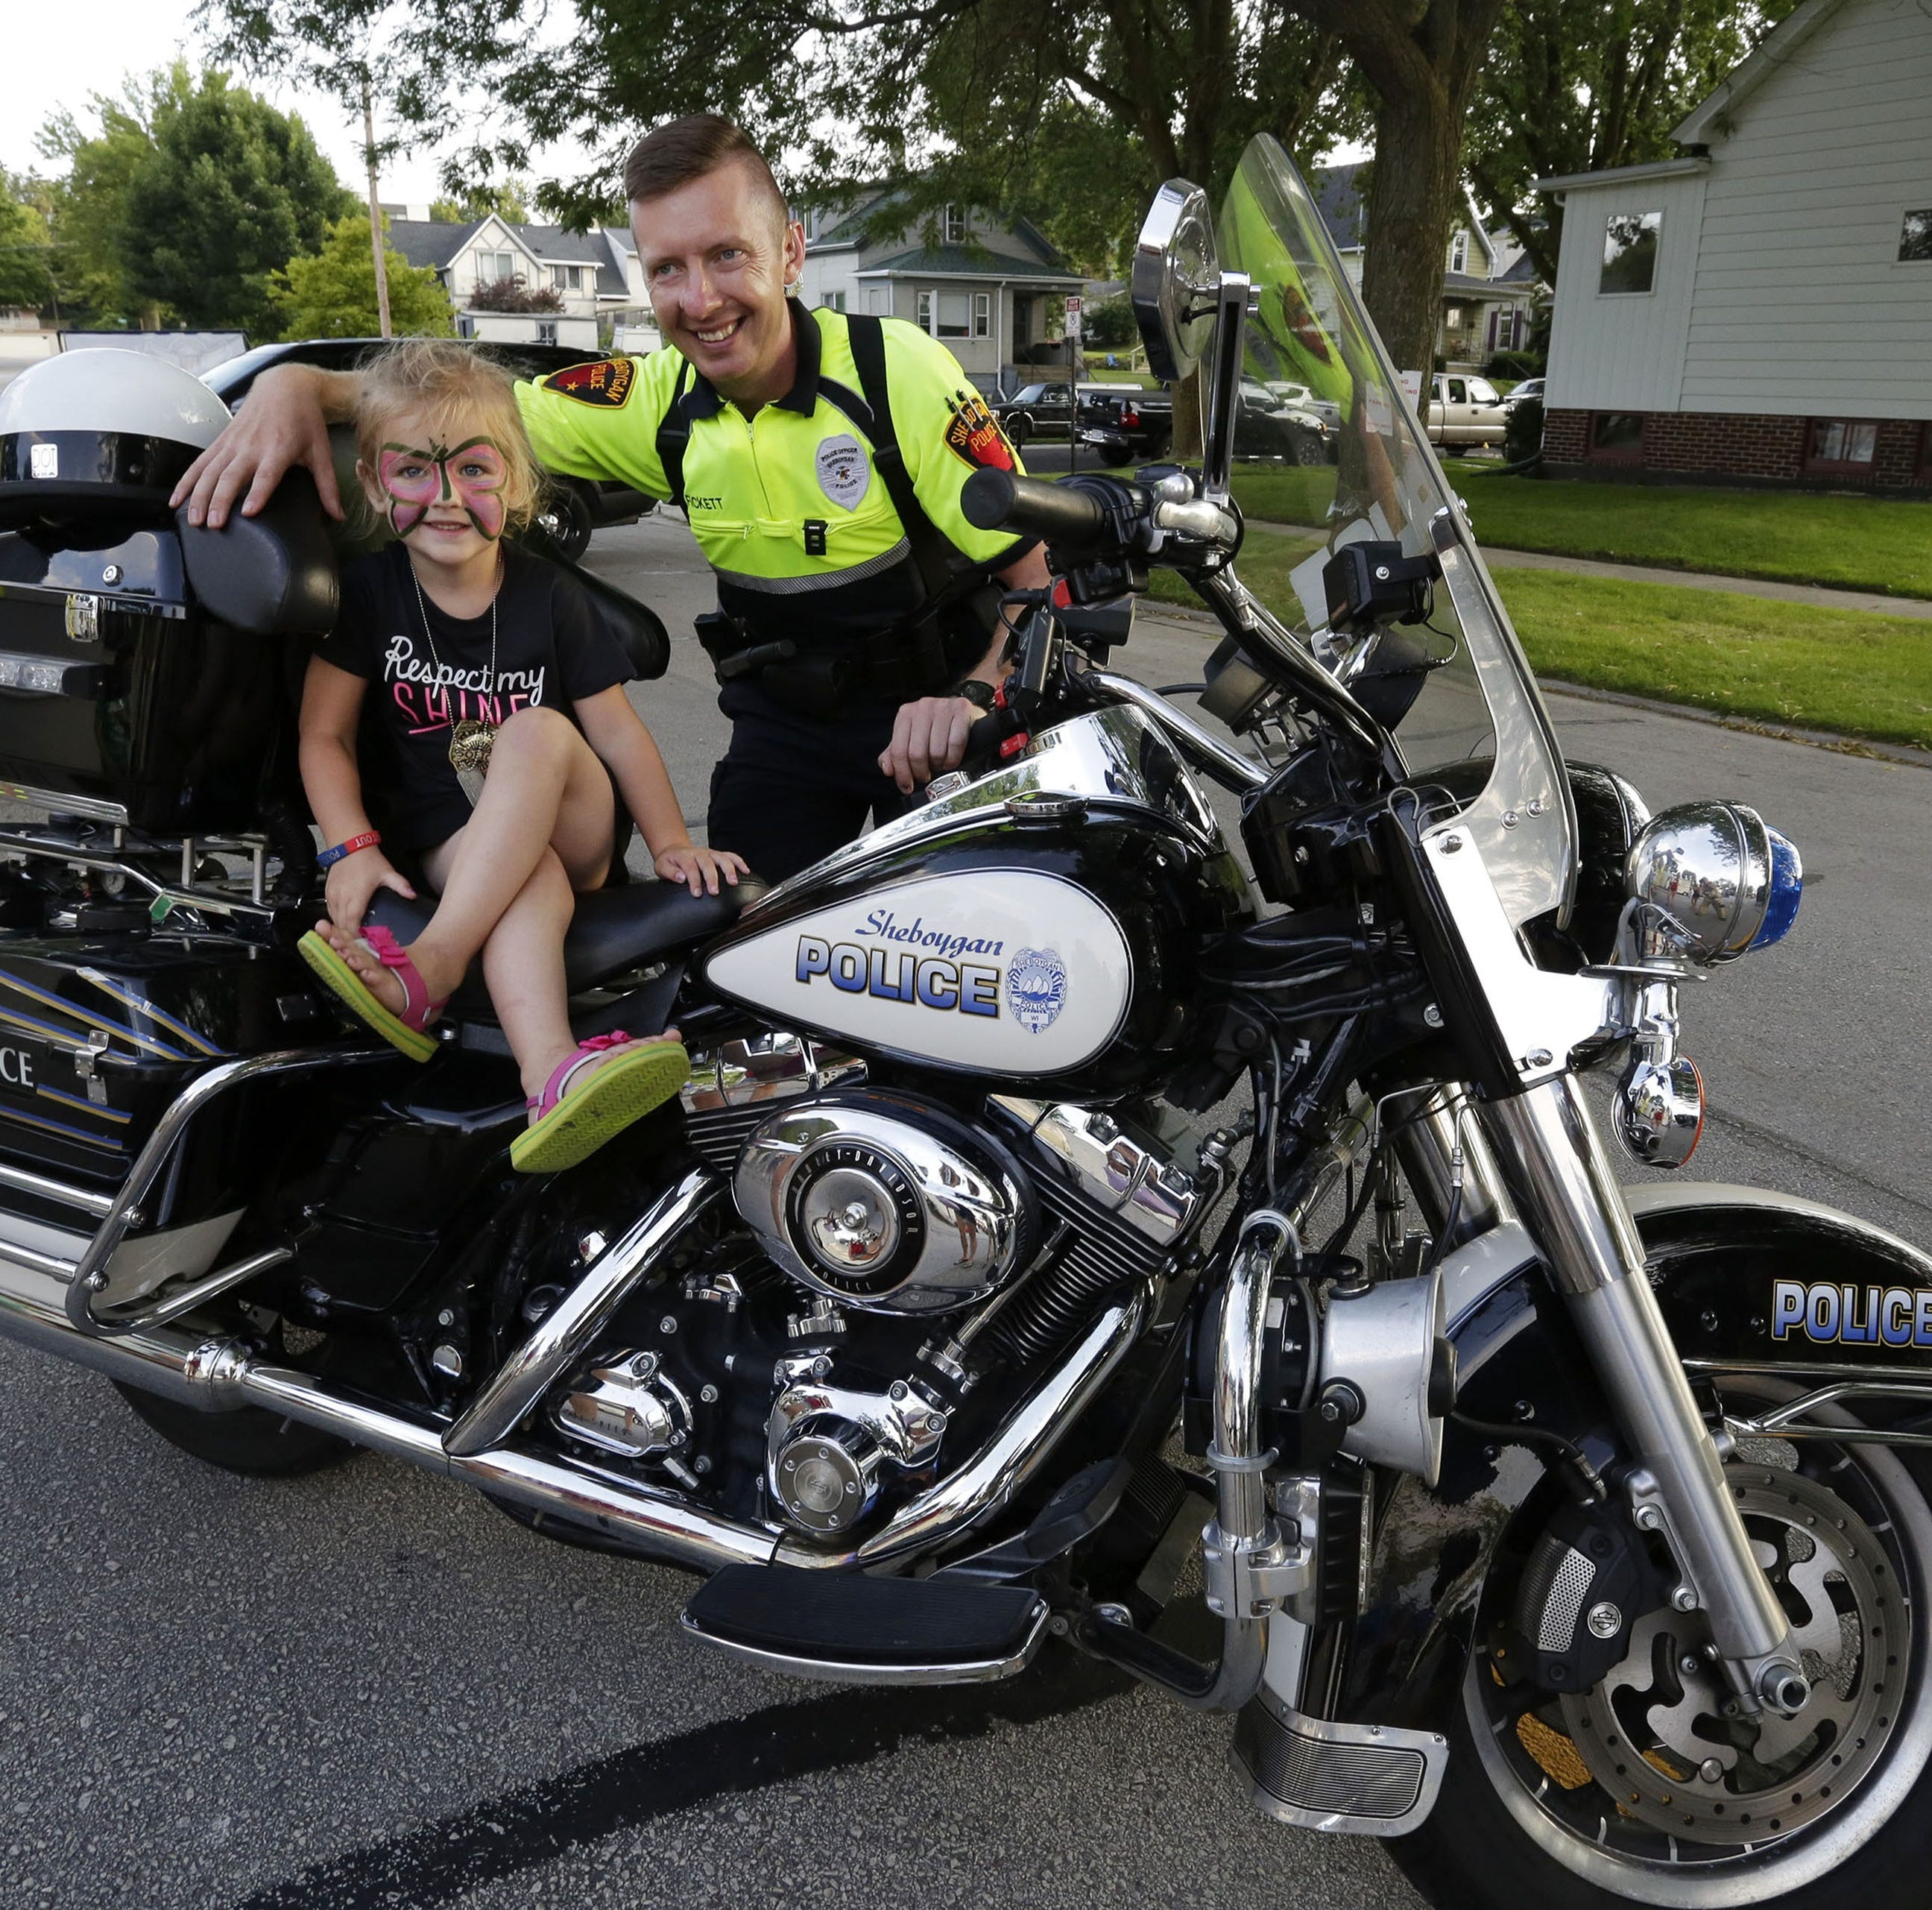 Step out for National Night Out in Sheboygan today